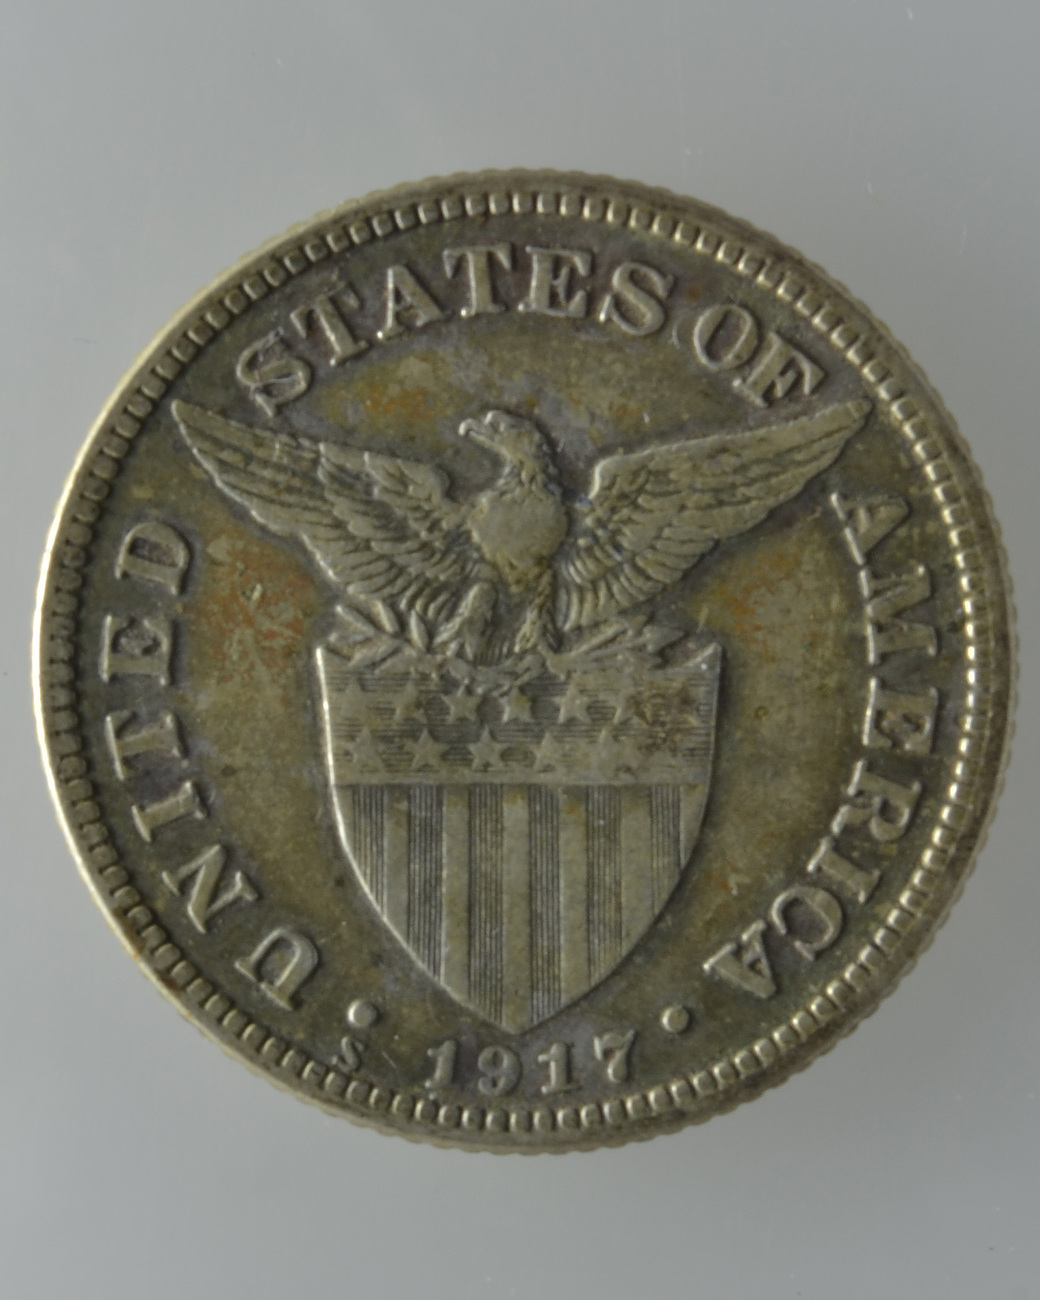 Coin Ph: U.S Philippines 1917s, 50 Centavos Silver Coin